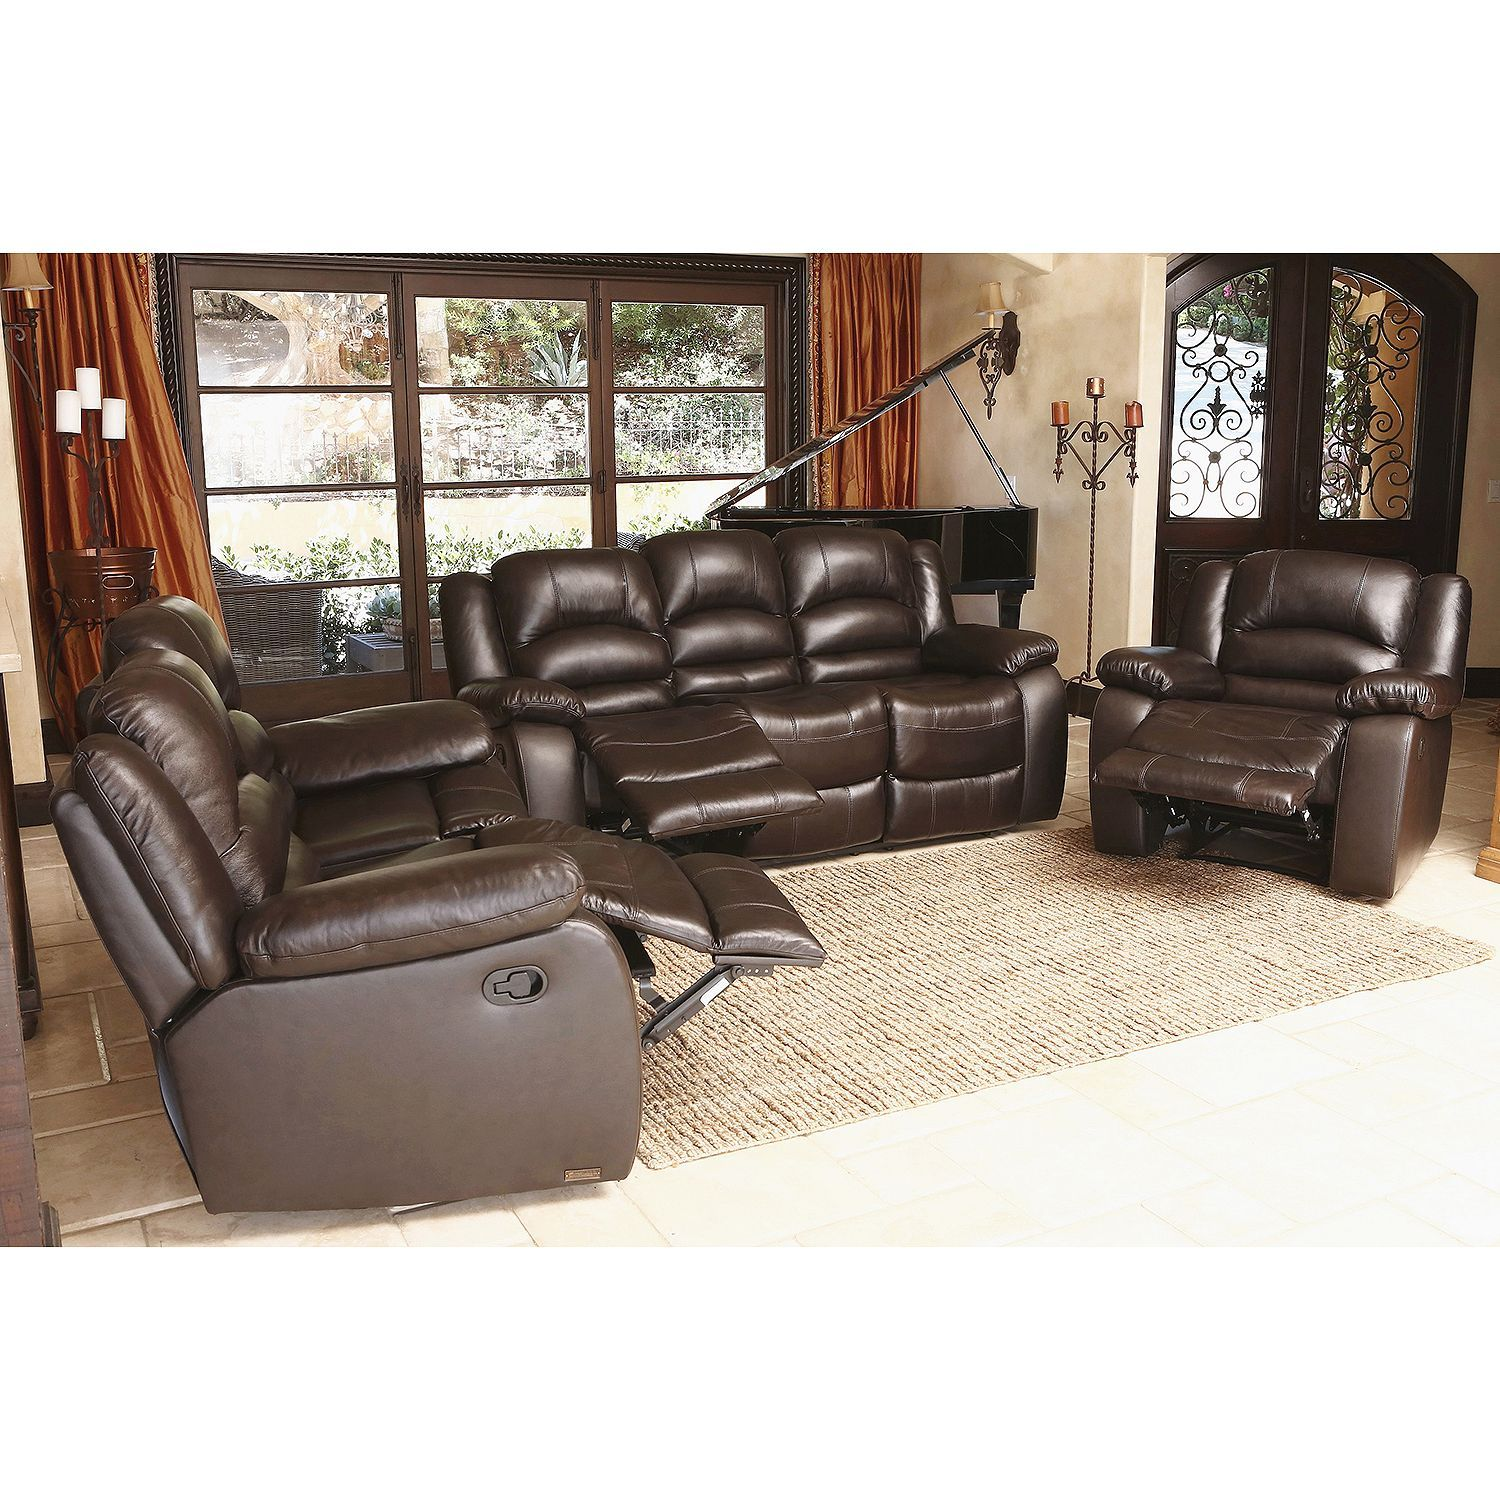 sams club living room furniture how to decorate a with dark leather verona top grain reclining sofa loveseat and chair set sam s